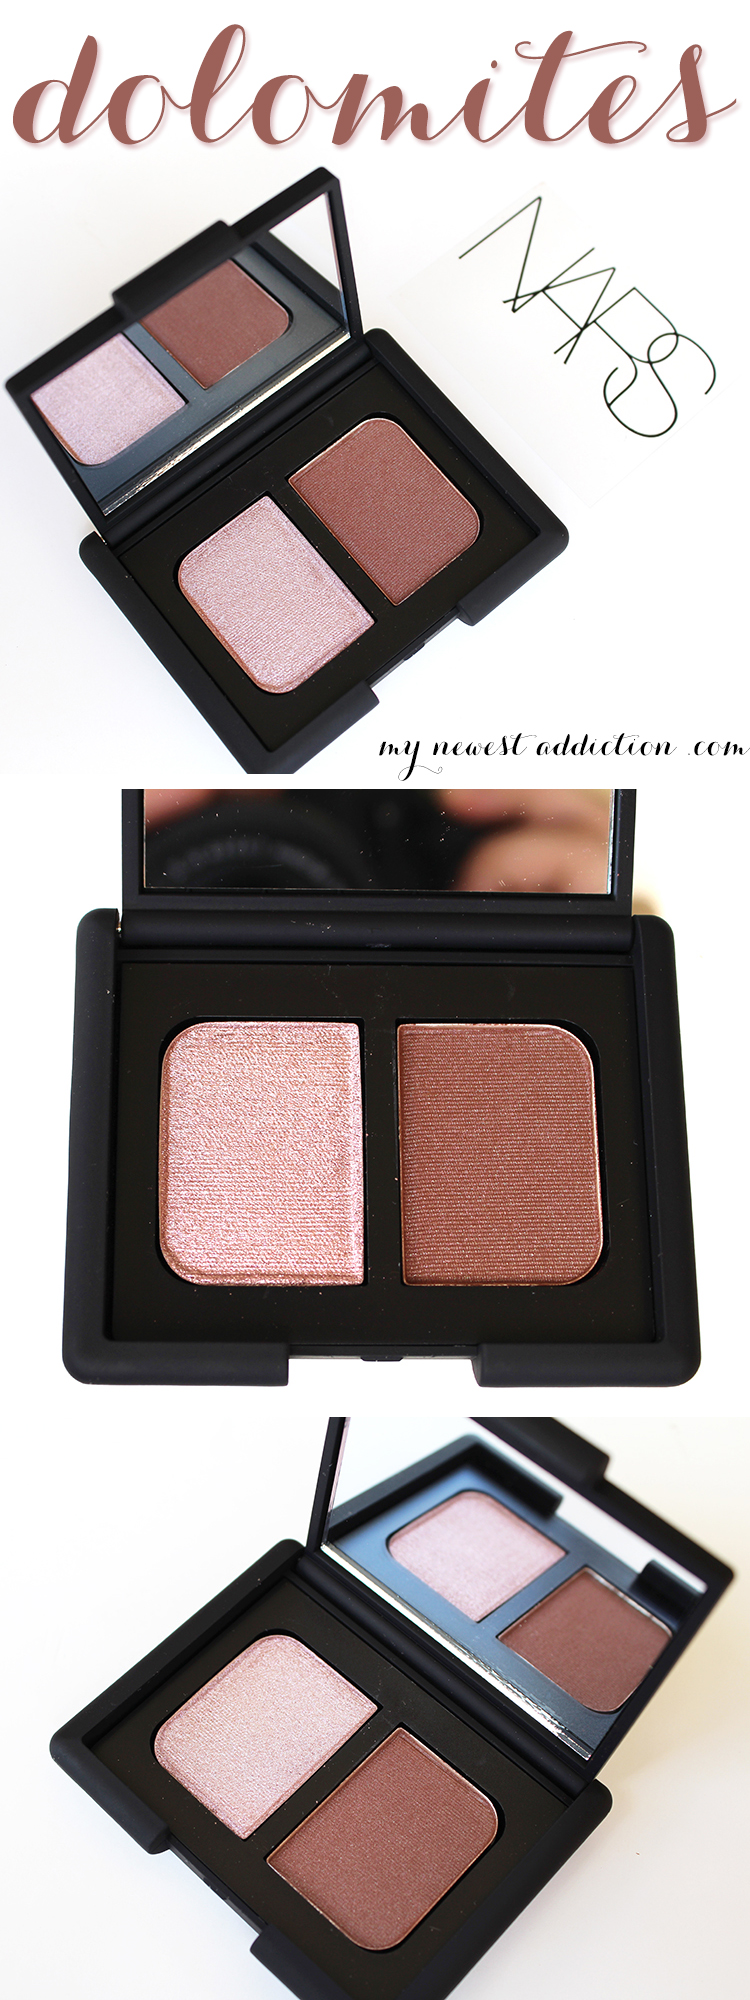 NARS Dolomites Eyeshadow Duo